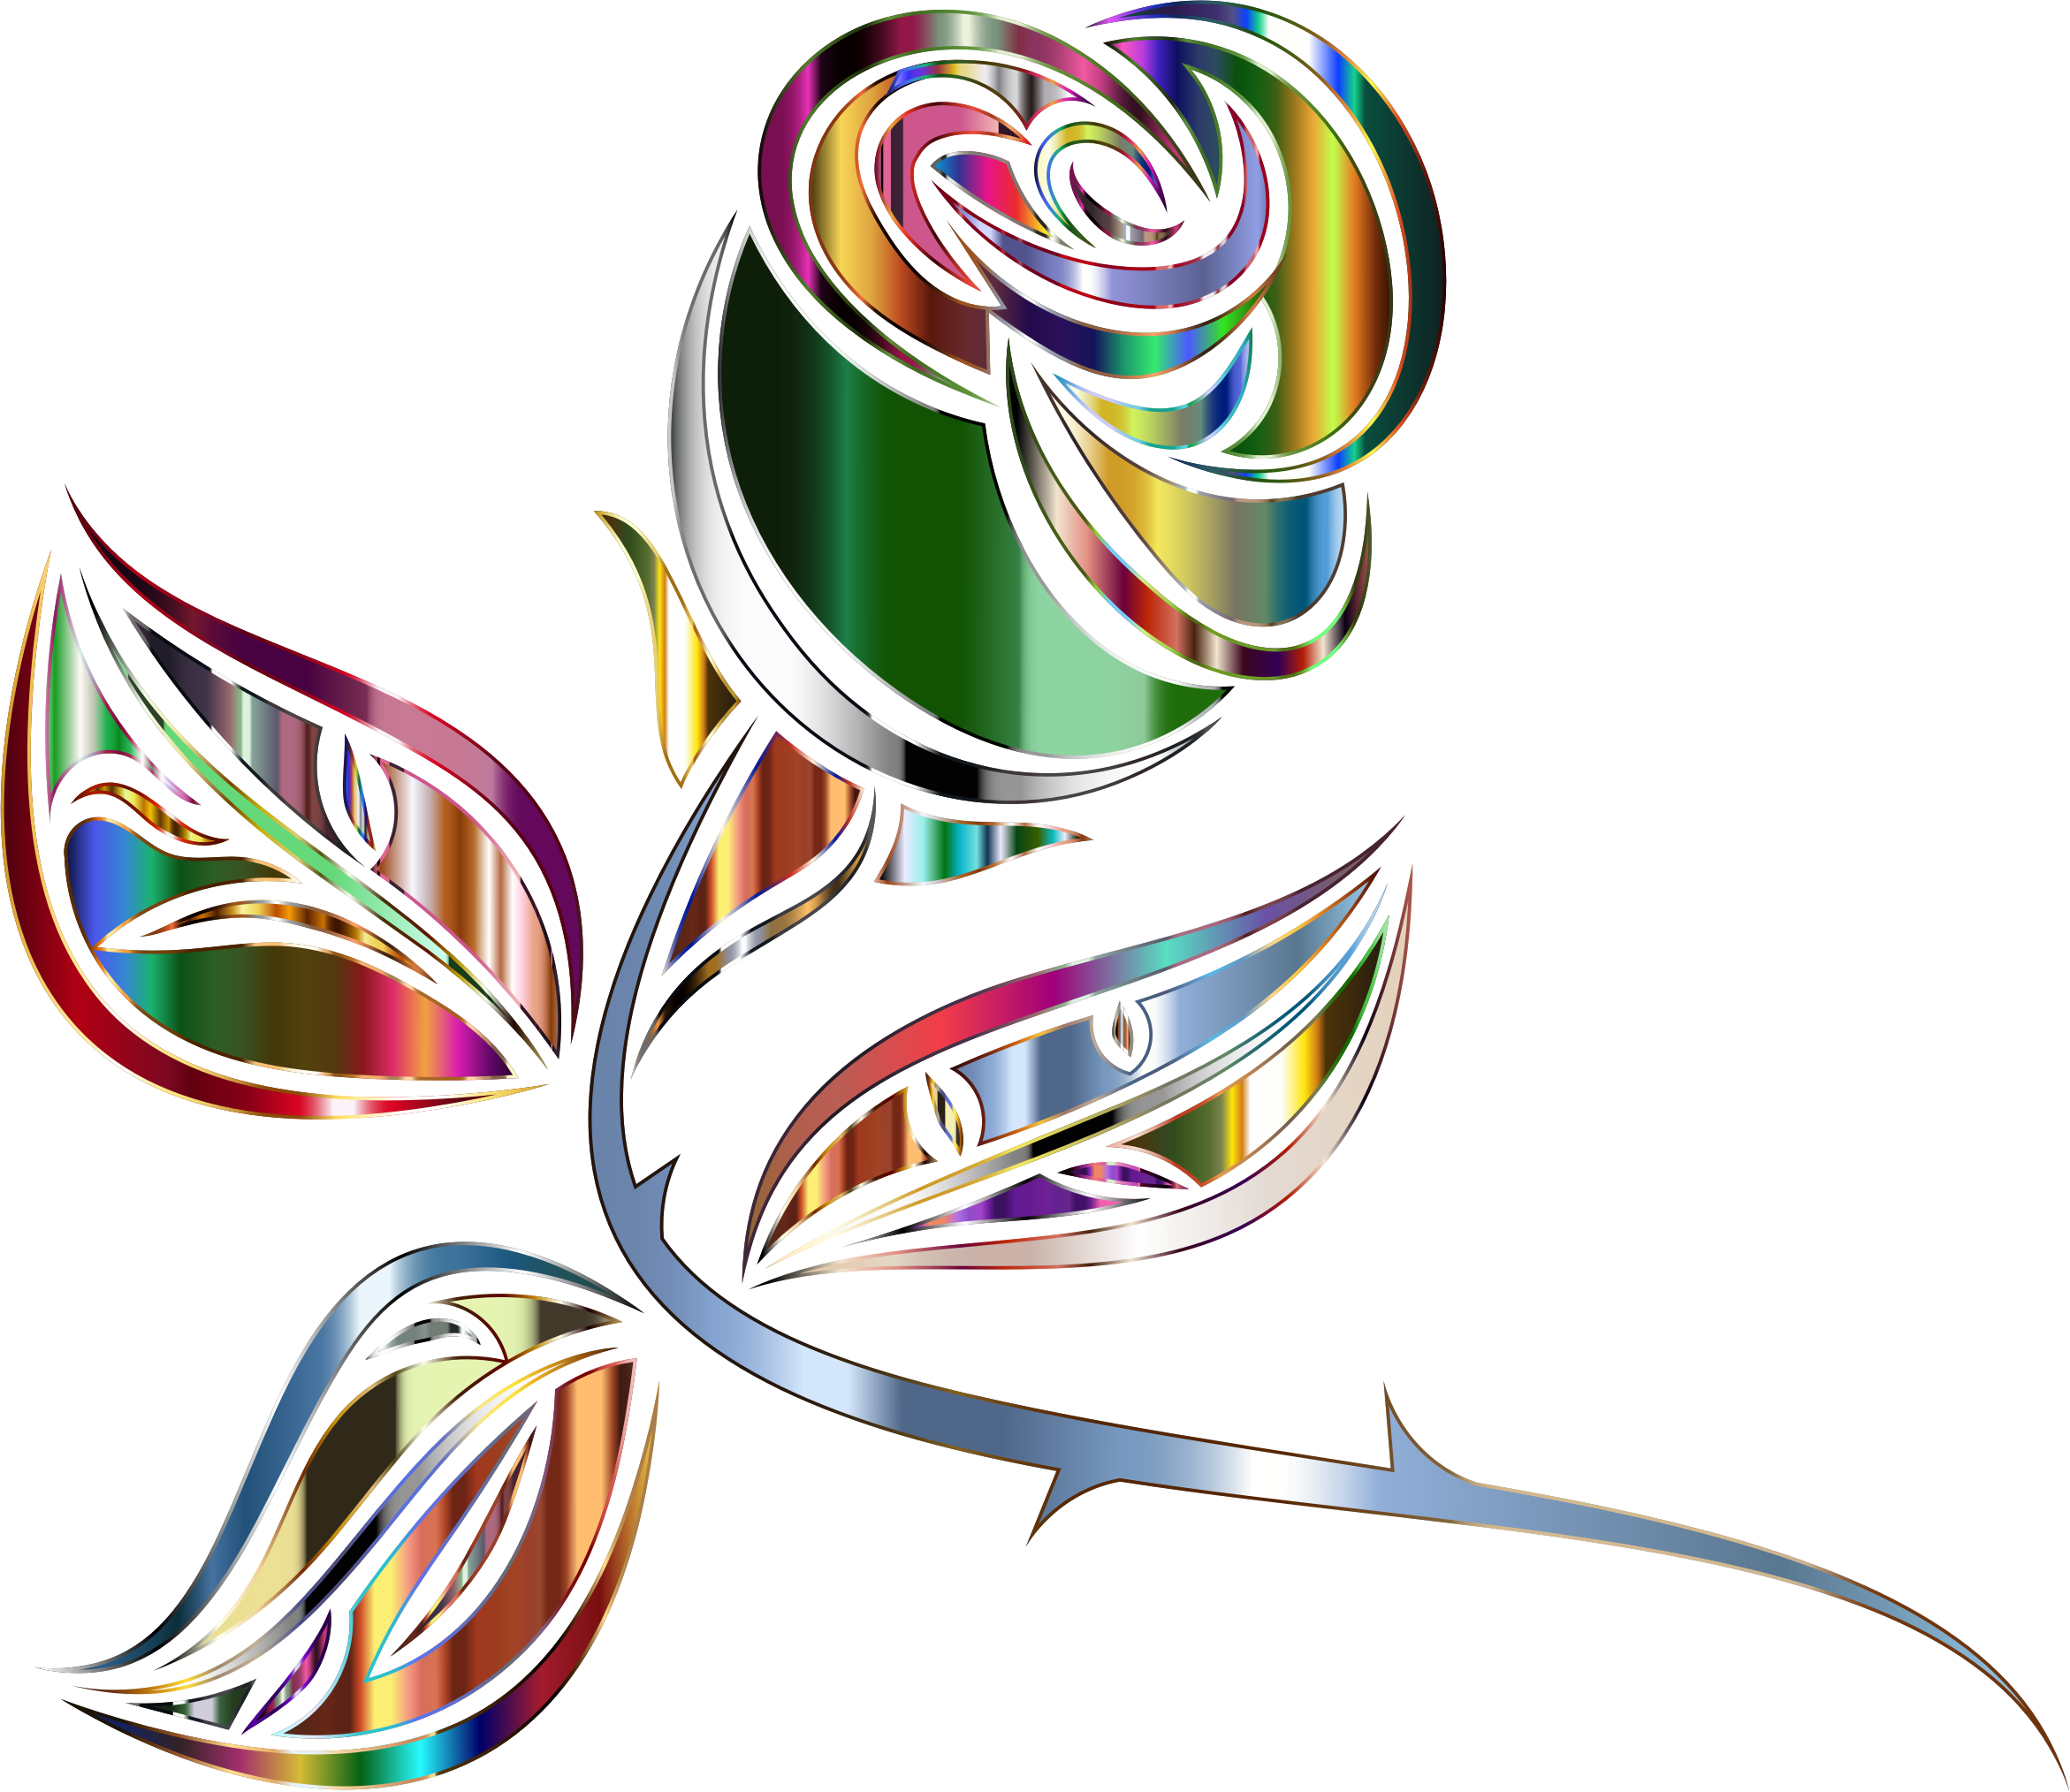 Stylized Rose Extended 10 Minus Background by GDJ